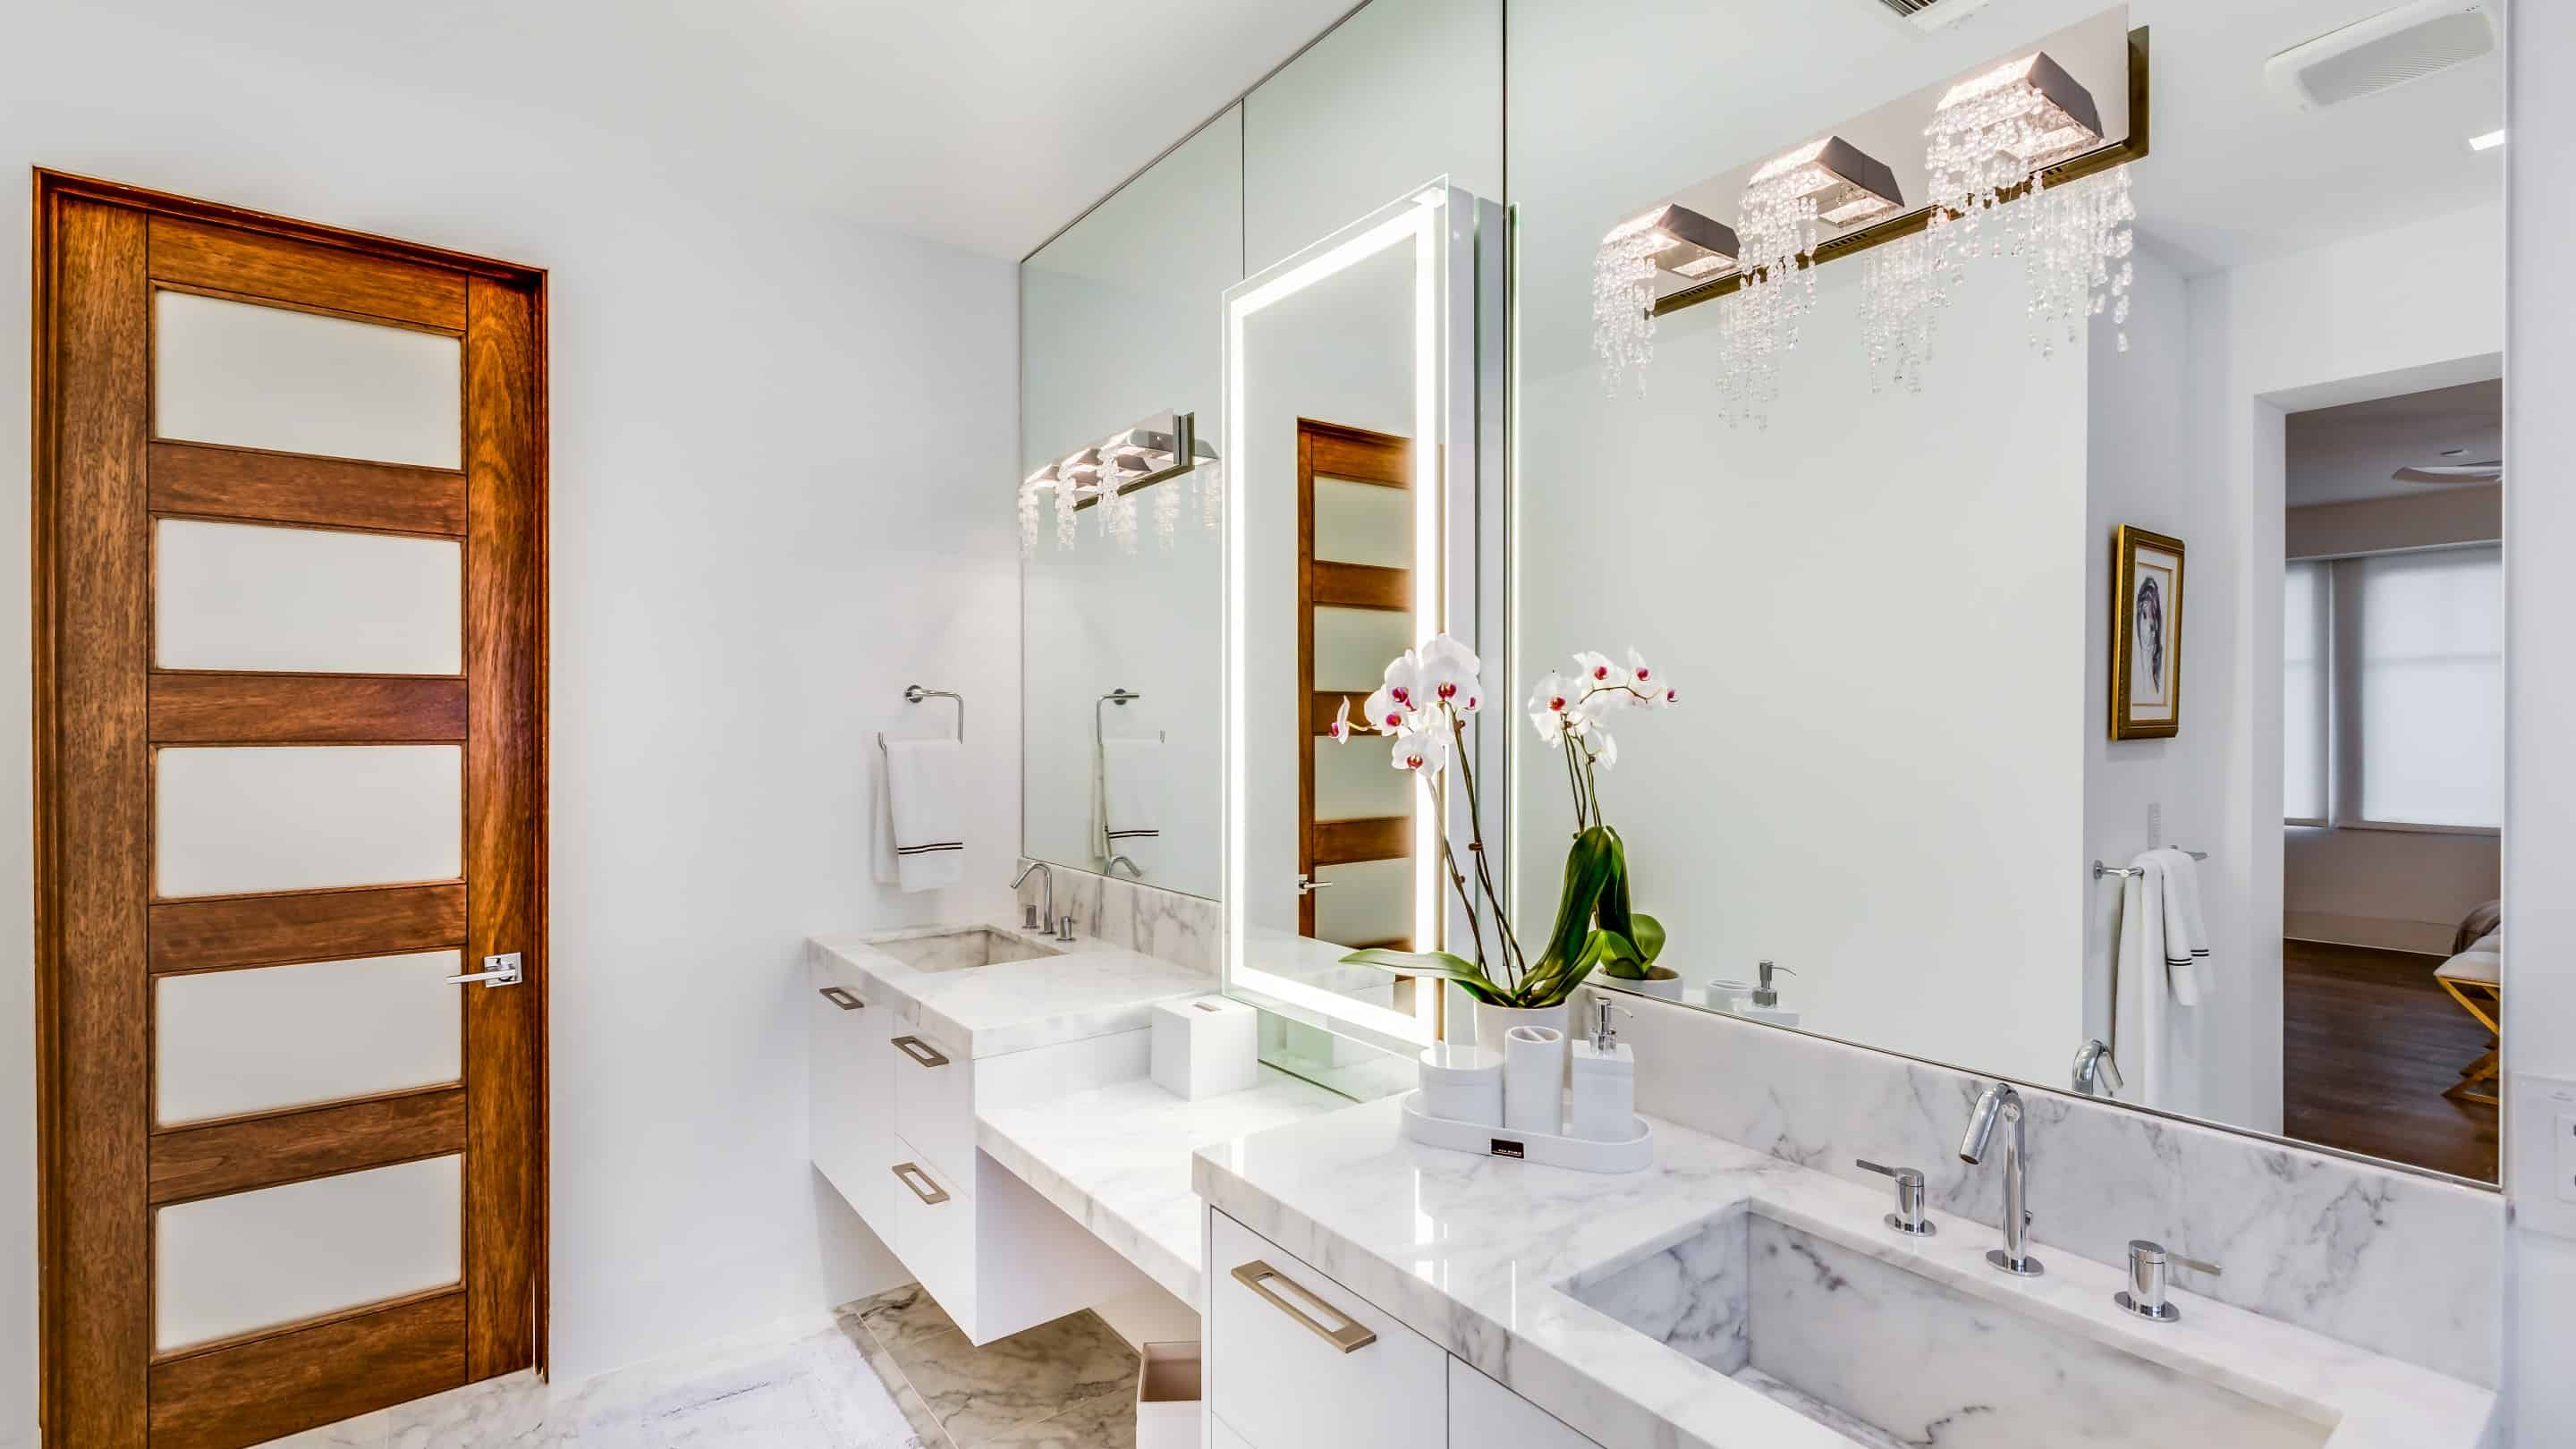 Lots of storage and classic style in this modern bathroom by eggersmann